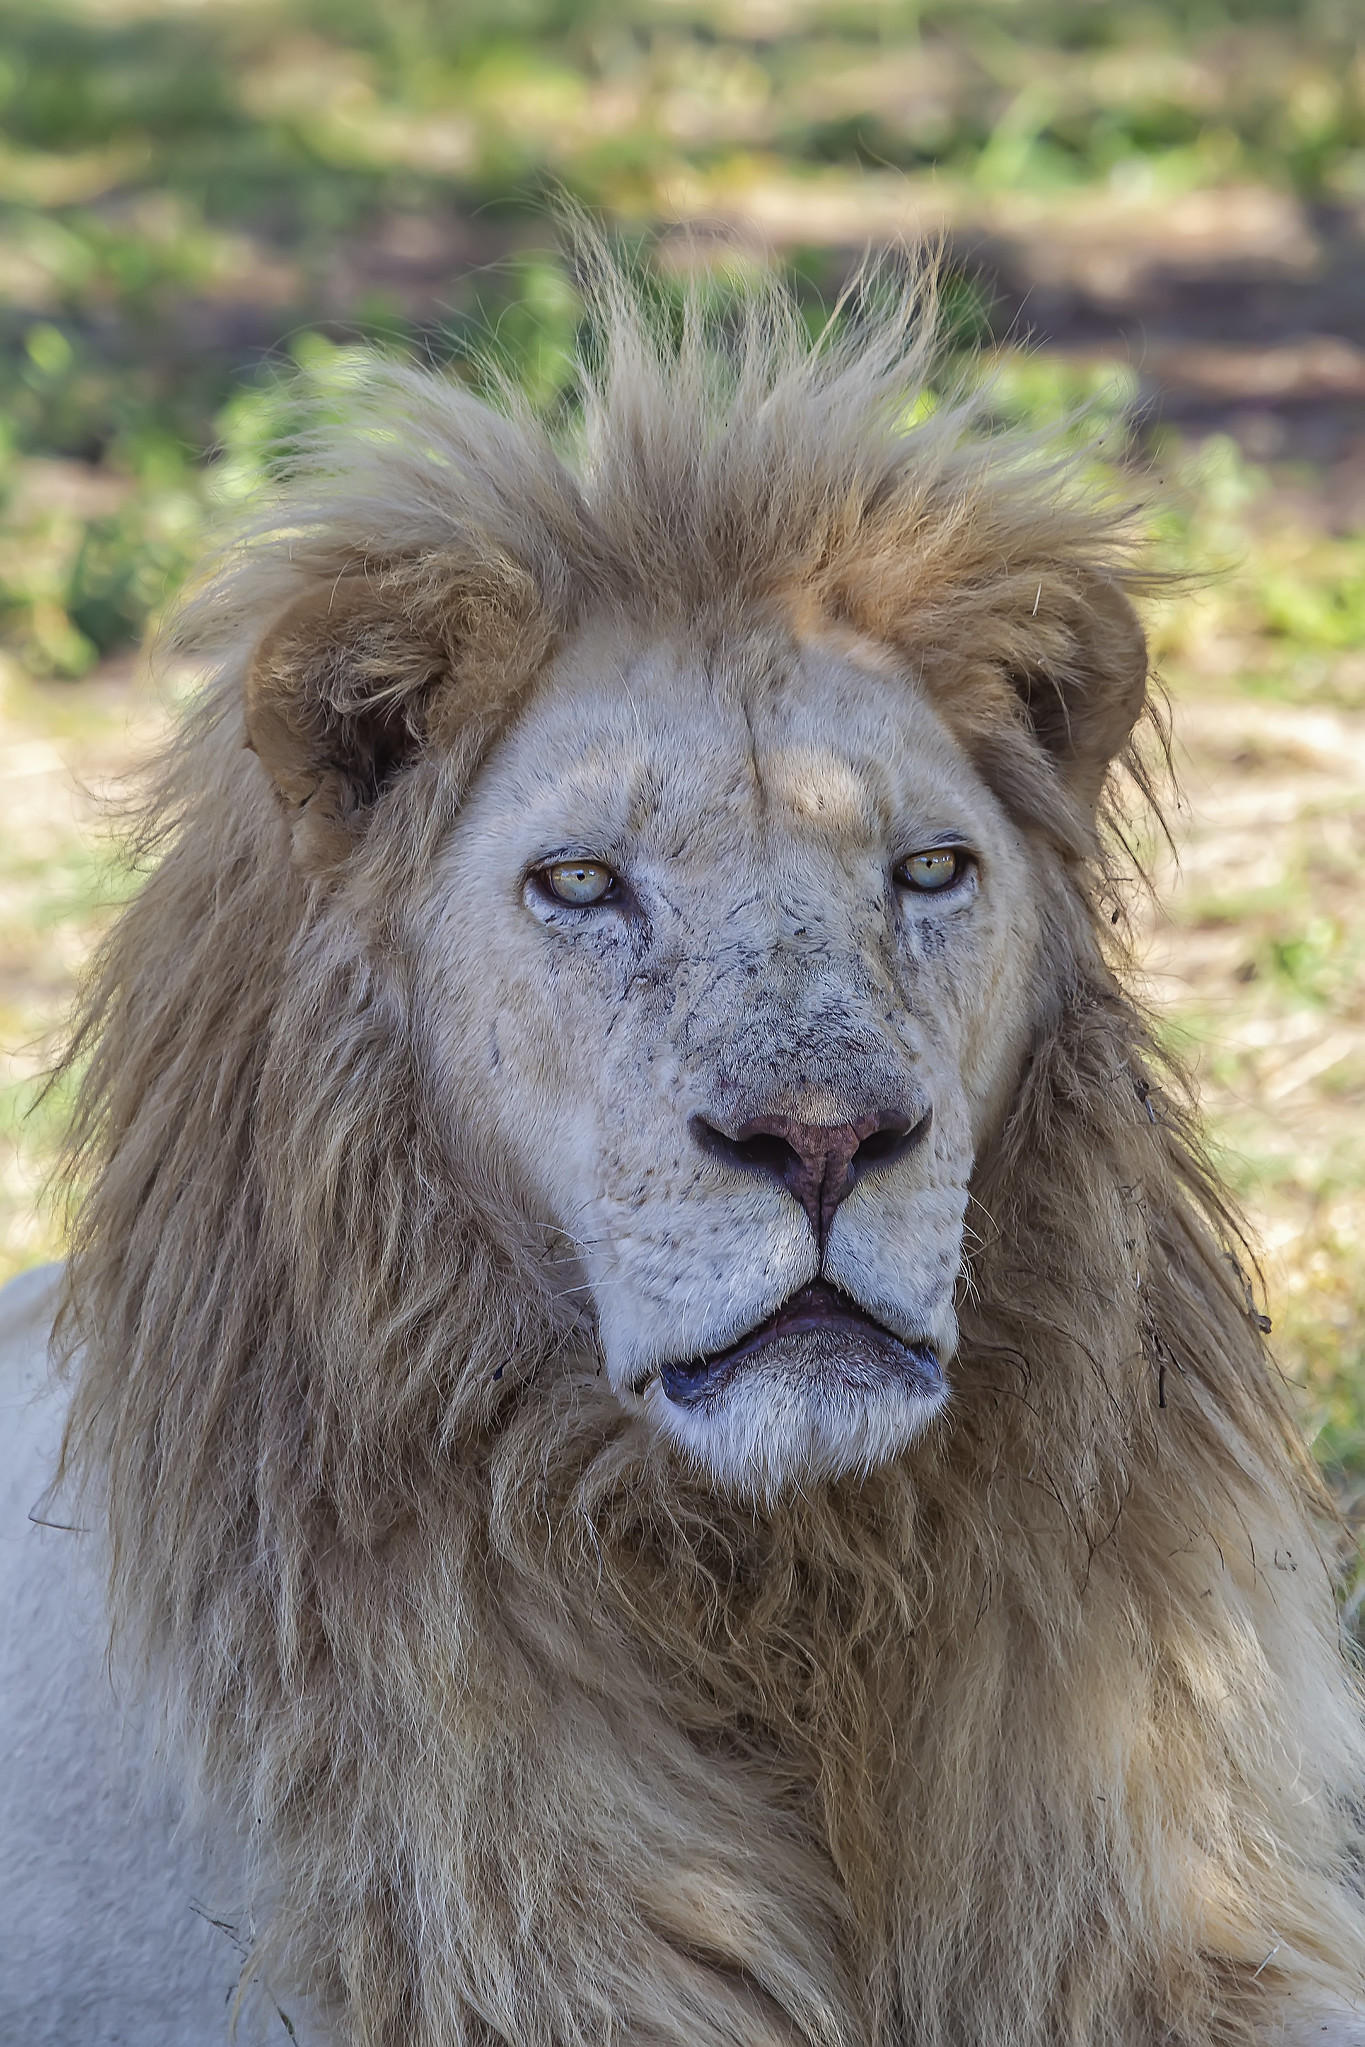 Older Lion in South Africa